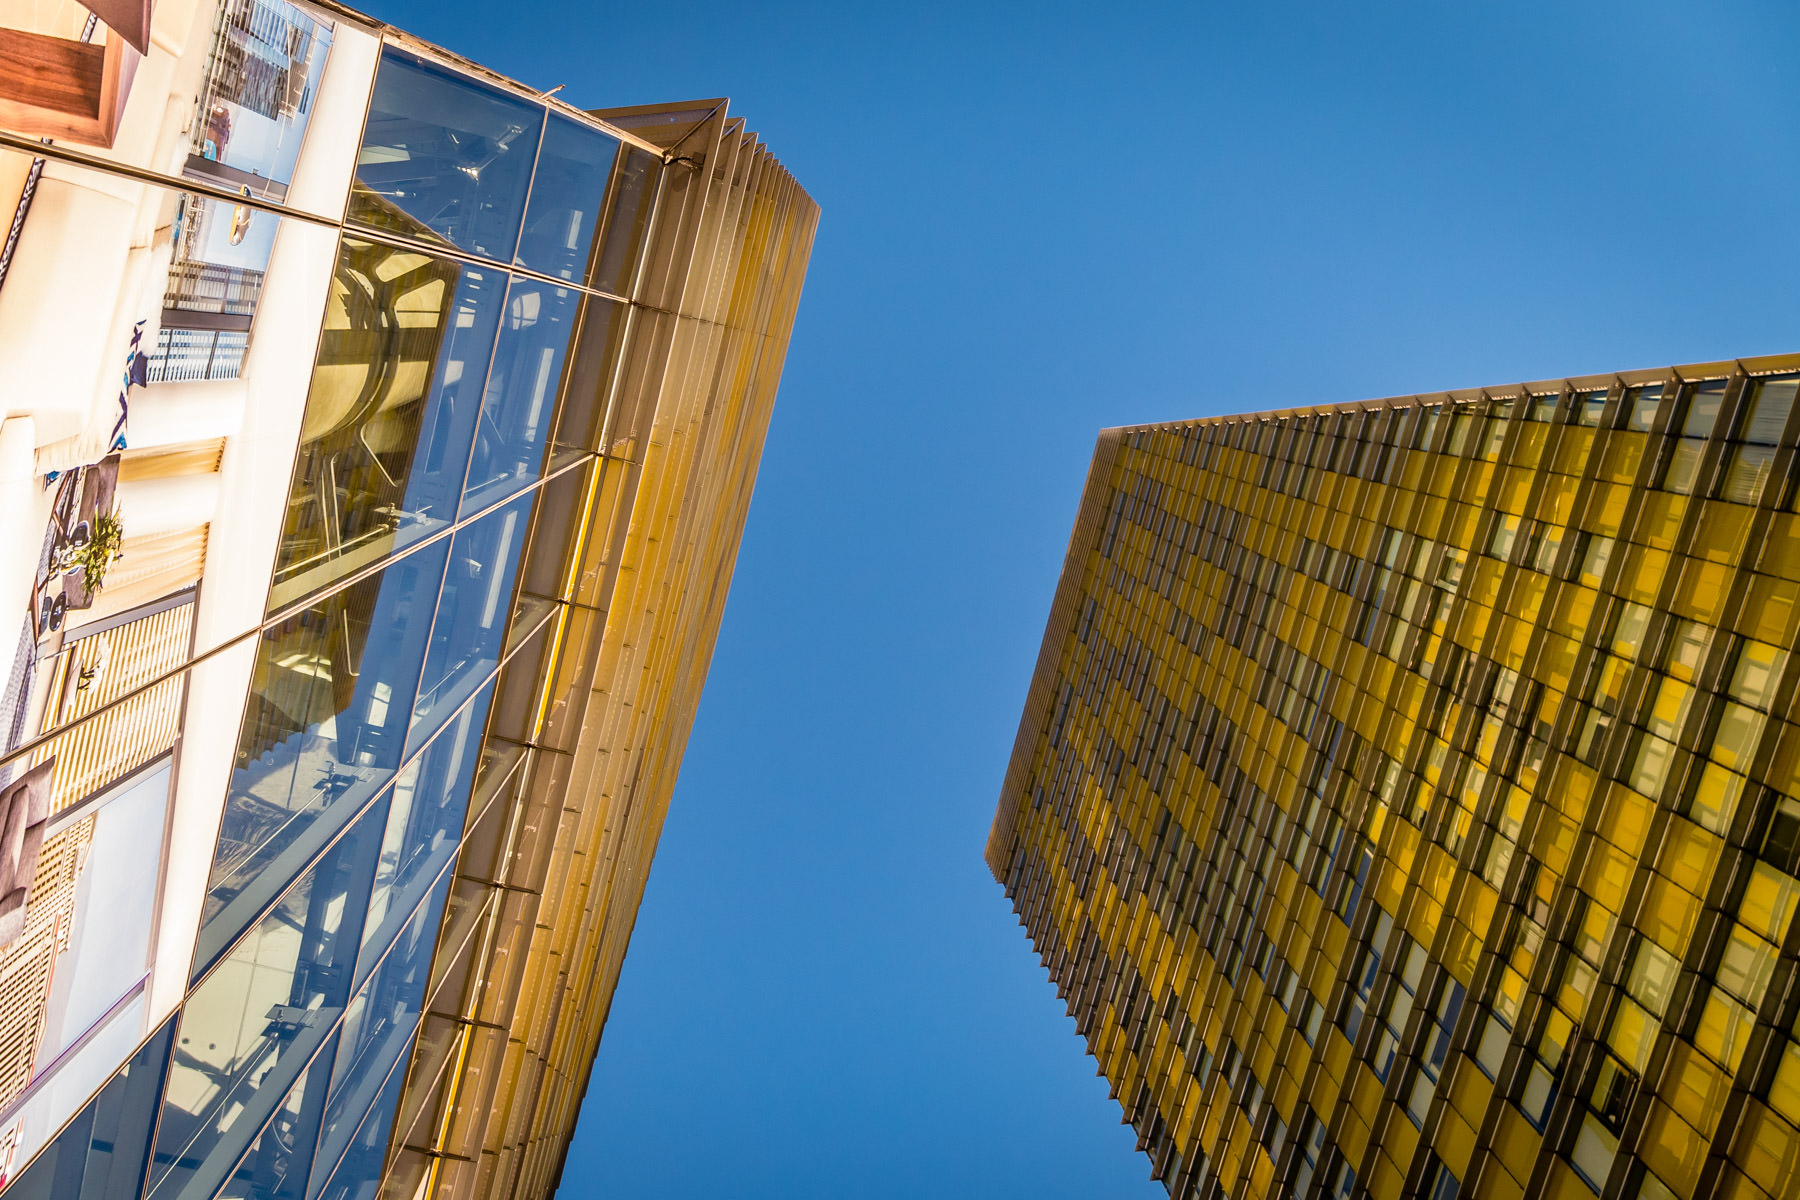 The Veer Towers at Las Vegas' CityCenter rise into the clear Nevada sky.